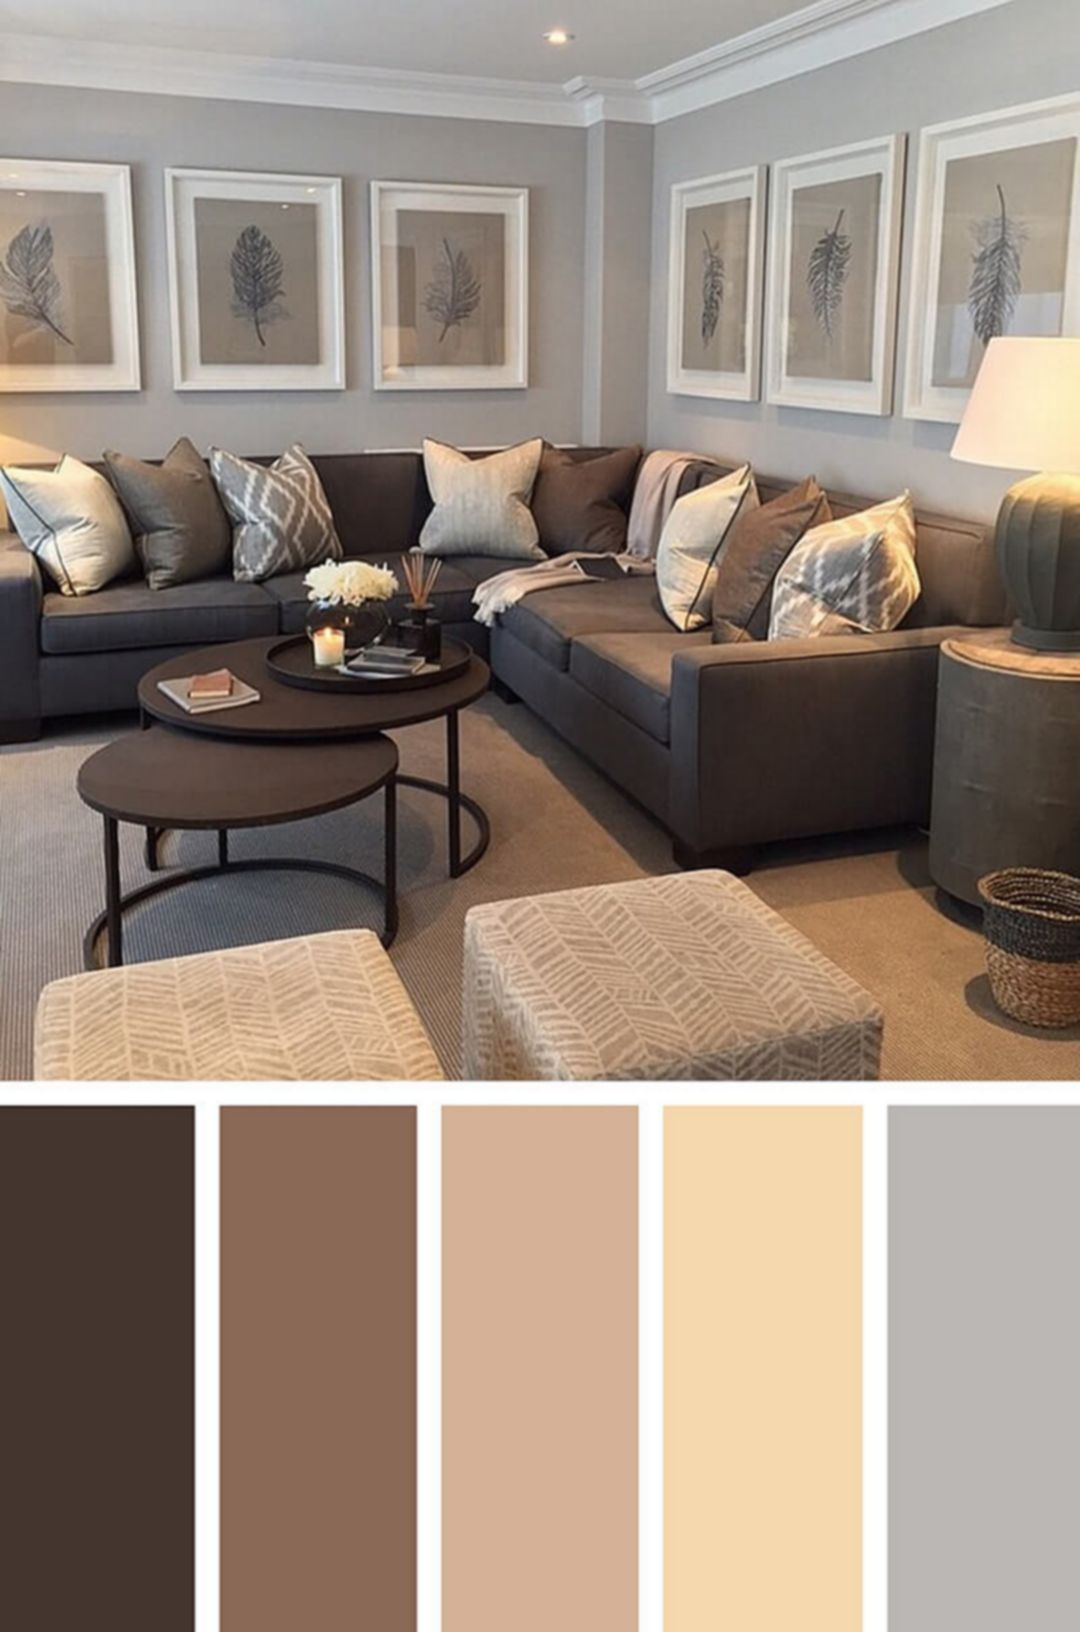 Design Color Harmony Living Room Ideas 16 Moolton Grey And Brown Living Room Living Room Color Schemes Paint Colors For Living Room